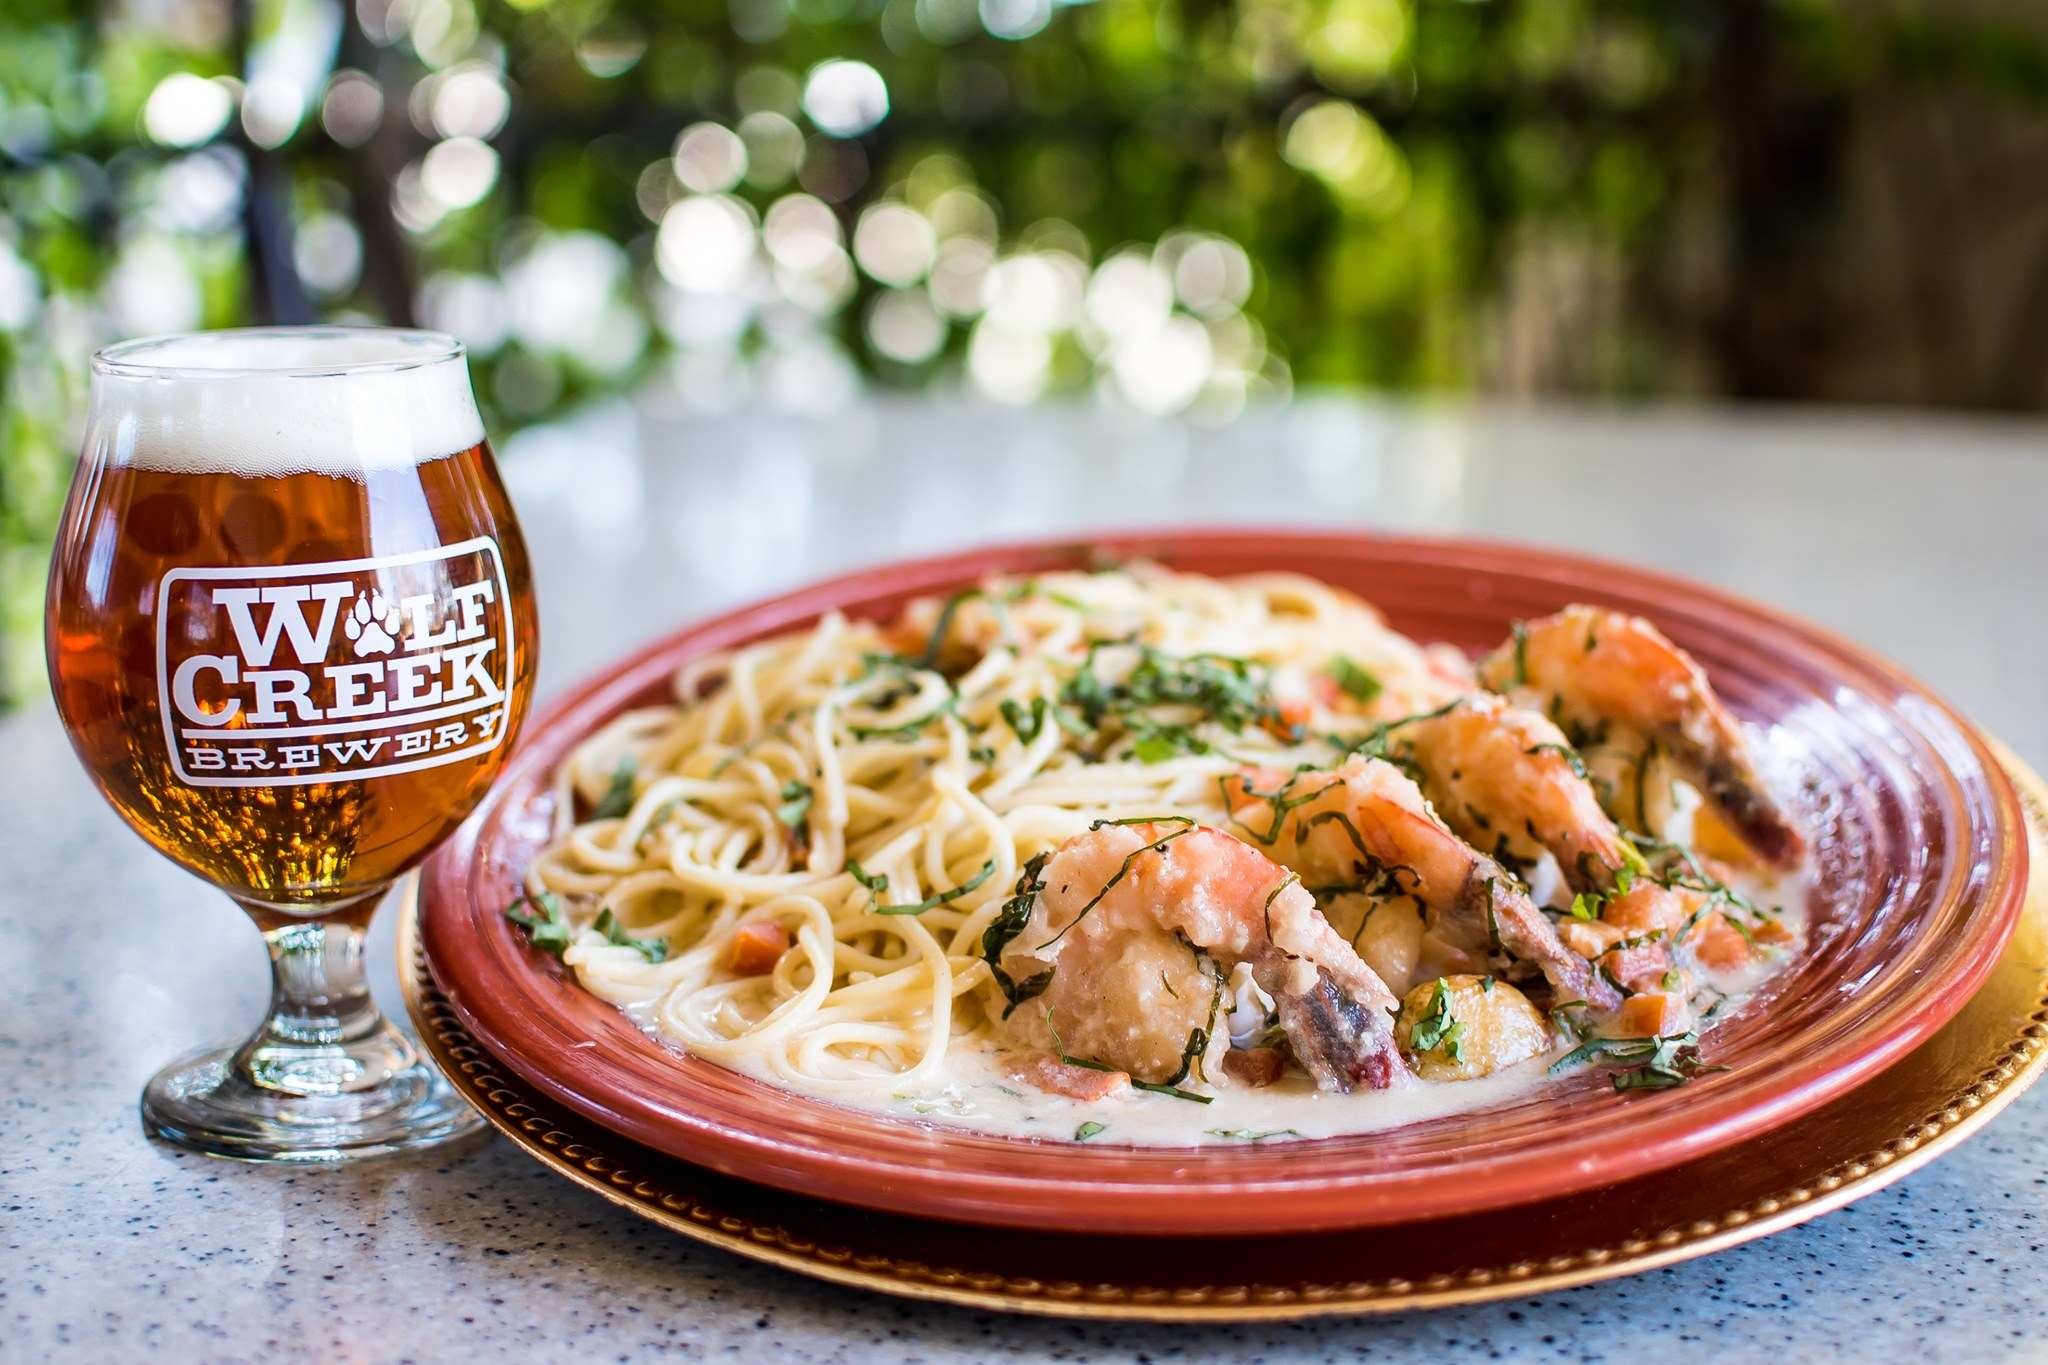 Seafood pasta and beer at Wolf Creek Restaurant.